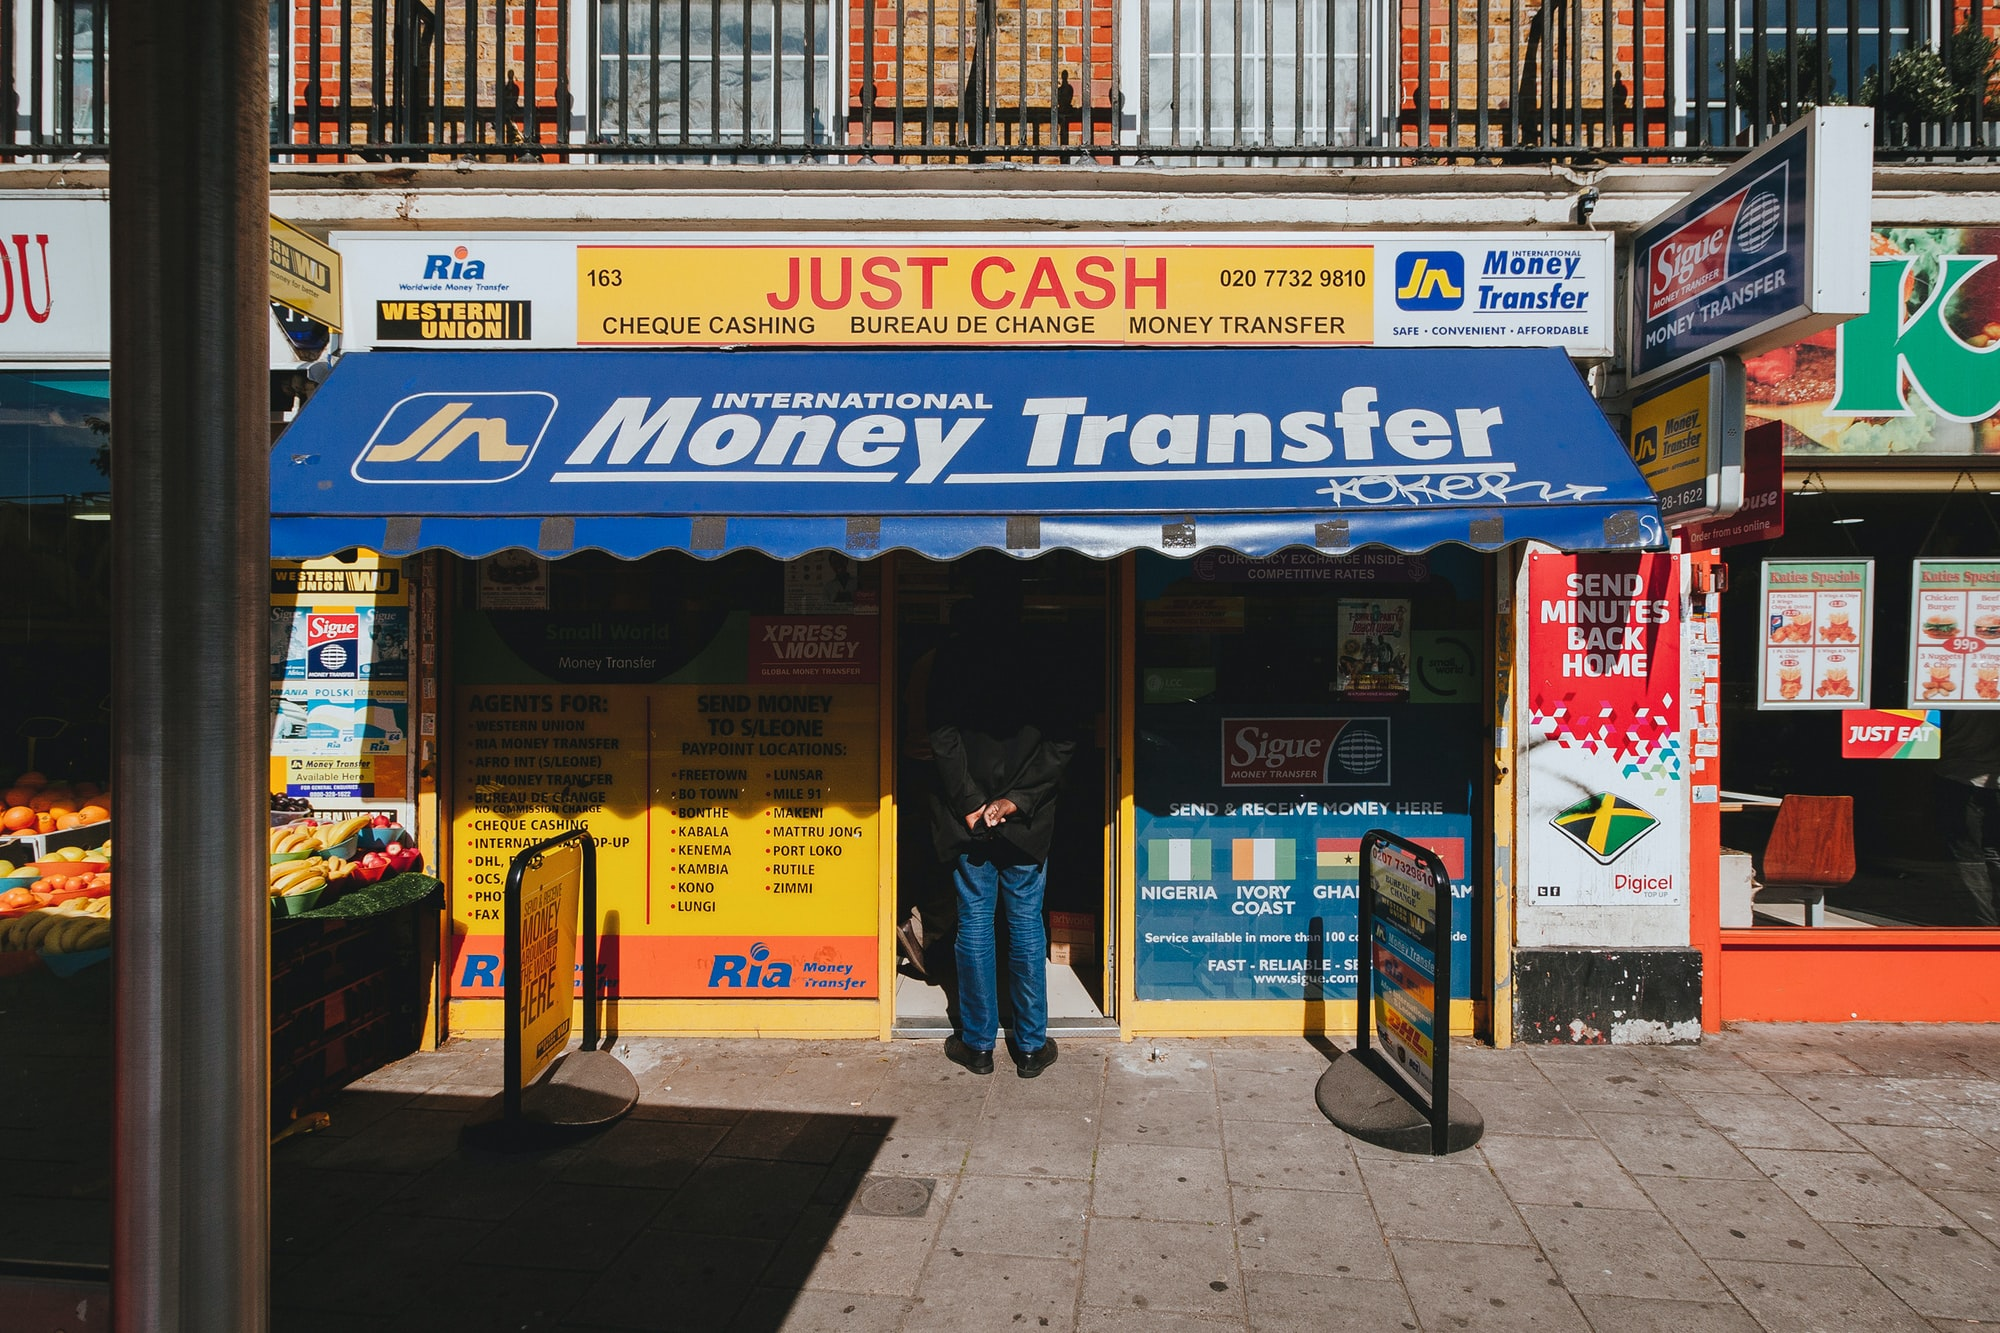 Doing business with Bitcoin, El Salvador, and how BIPs work